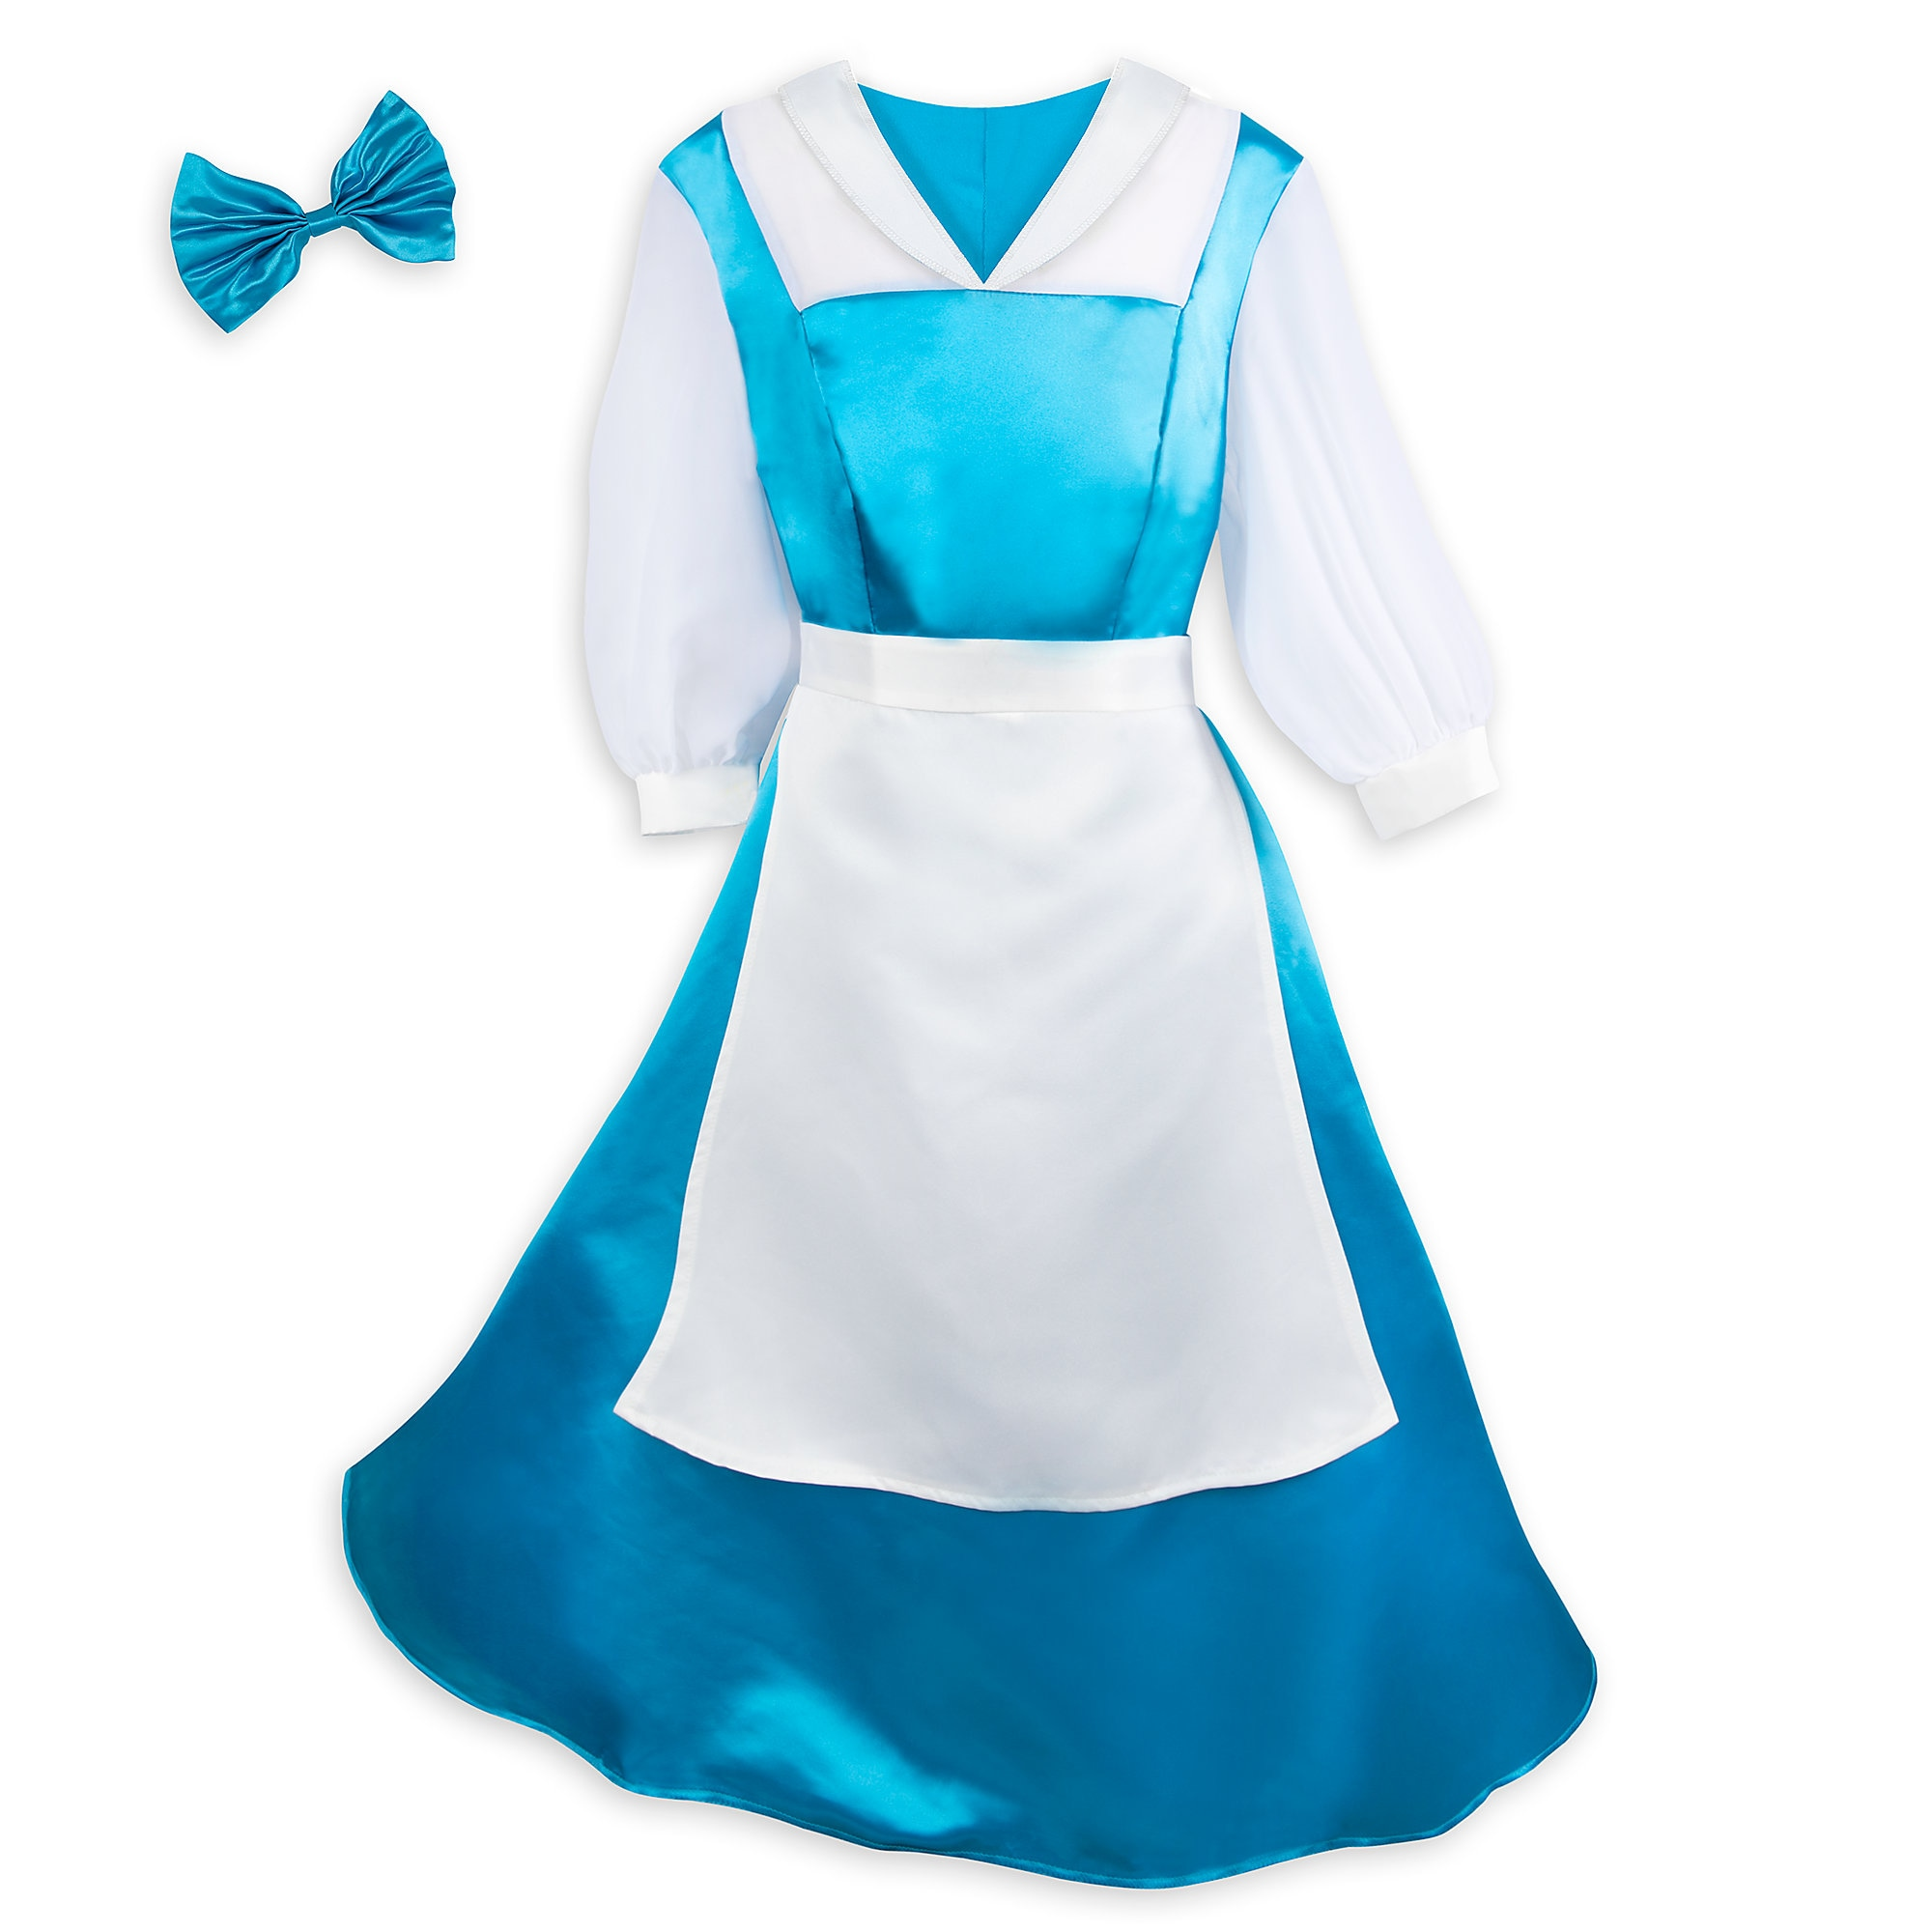 Belle Costume Dress Set for Adults by Disguise  sc 1 st  shopDisney & Belle Costume Dress Set for Adults by Disguise | shopDisney